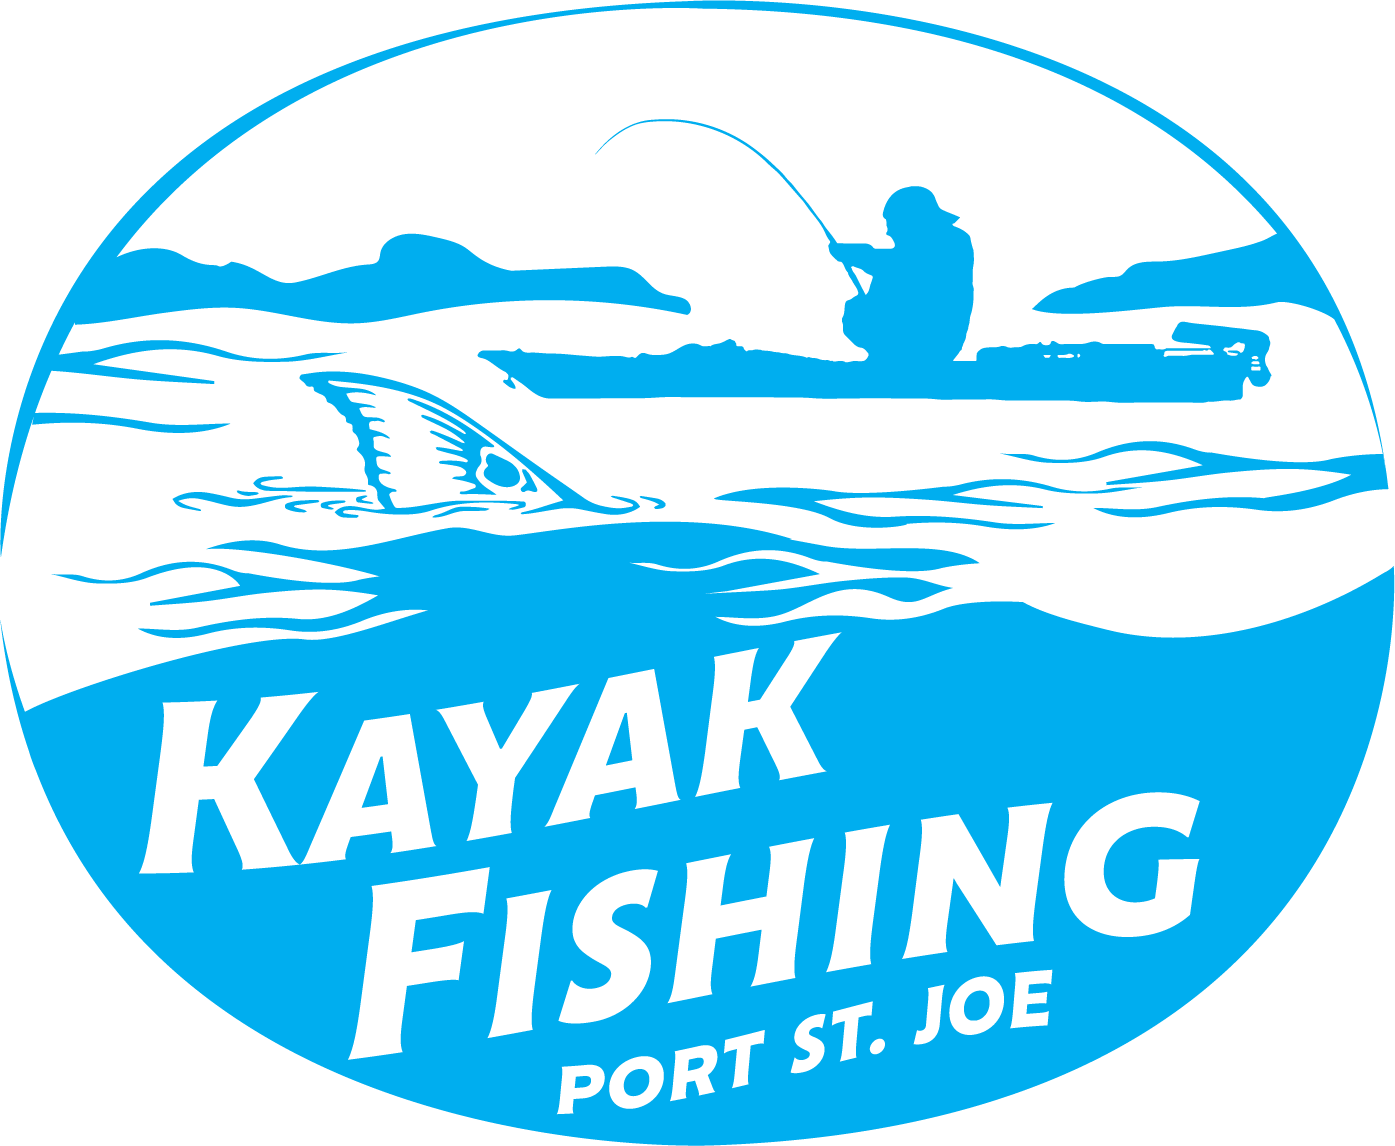 Kayak Fishing PSJ logo-teal.png